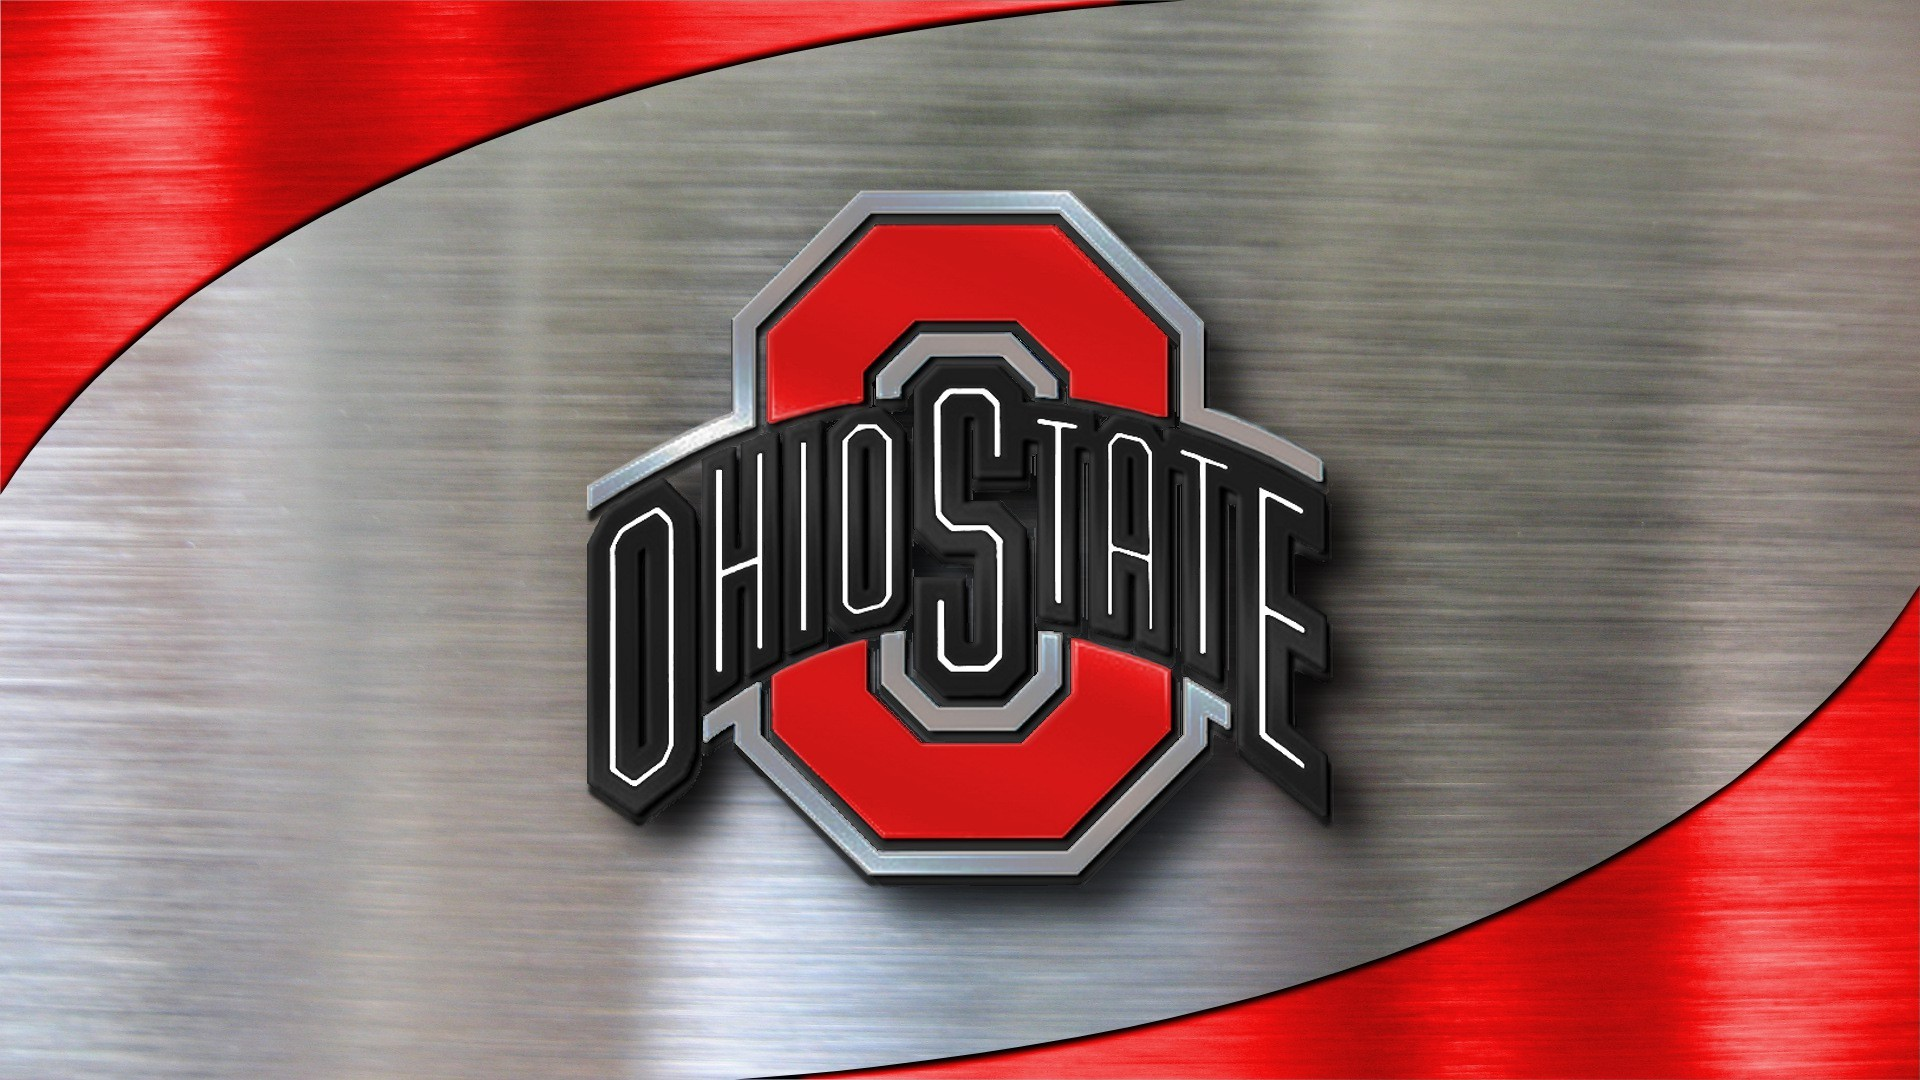 Ohio State Wallpaper 1 Download Free Beautiful Full HD Wallpapers